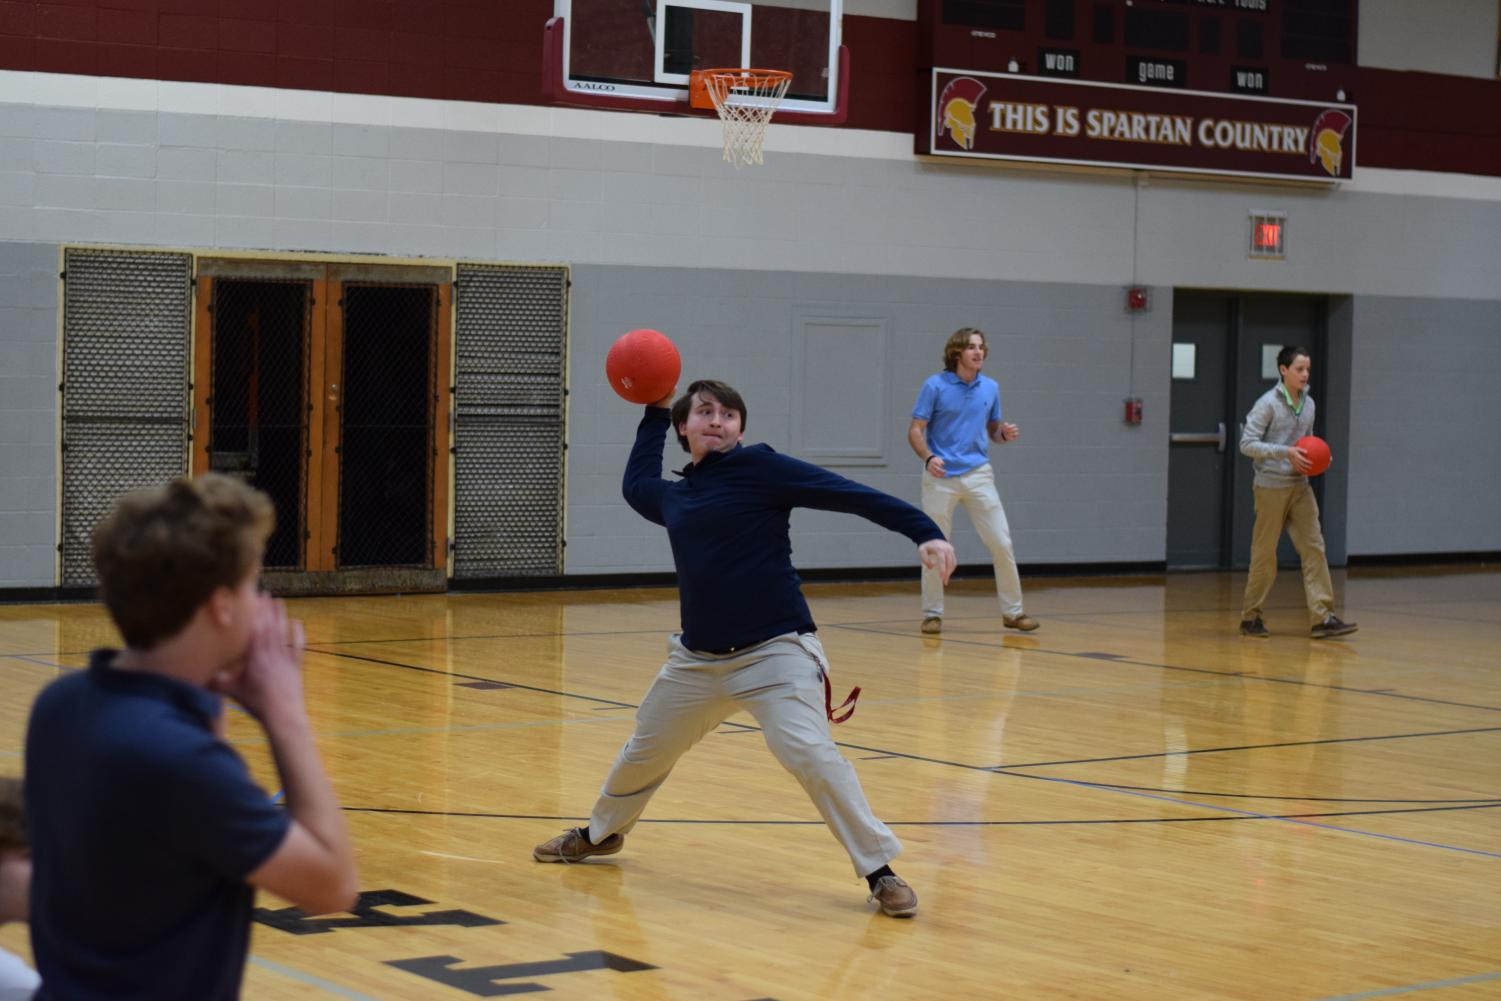 Senior Matt Linomaz launches a dodge ball toward the opposing team to win the competition for his house.